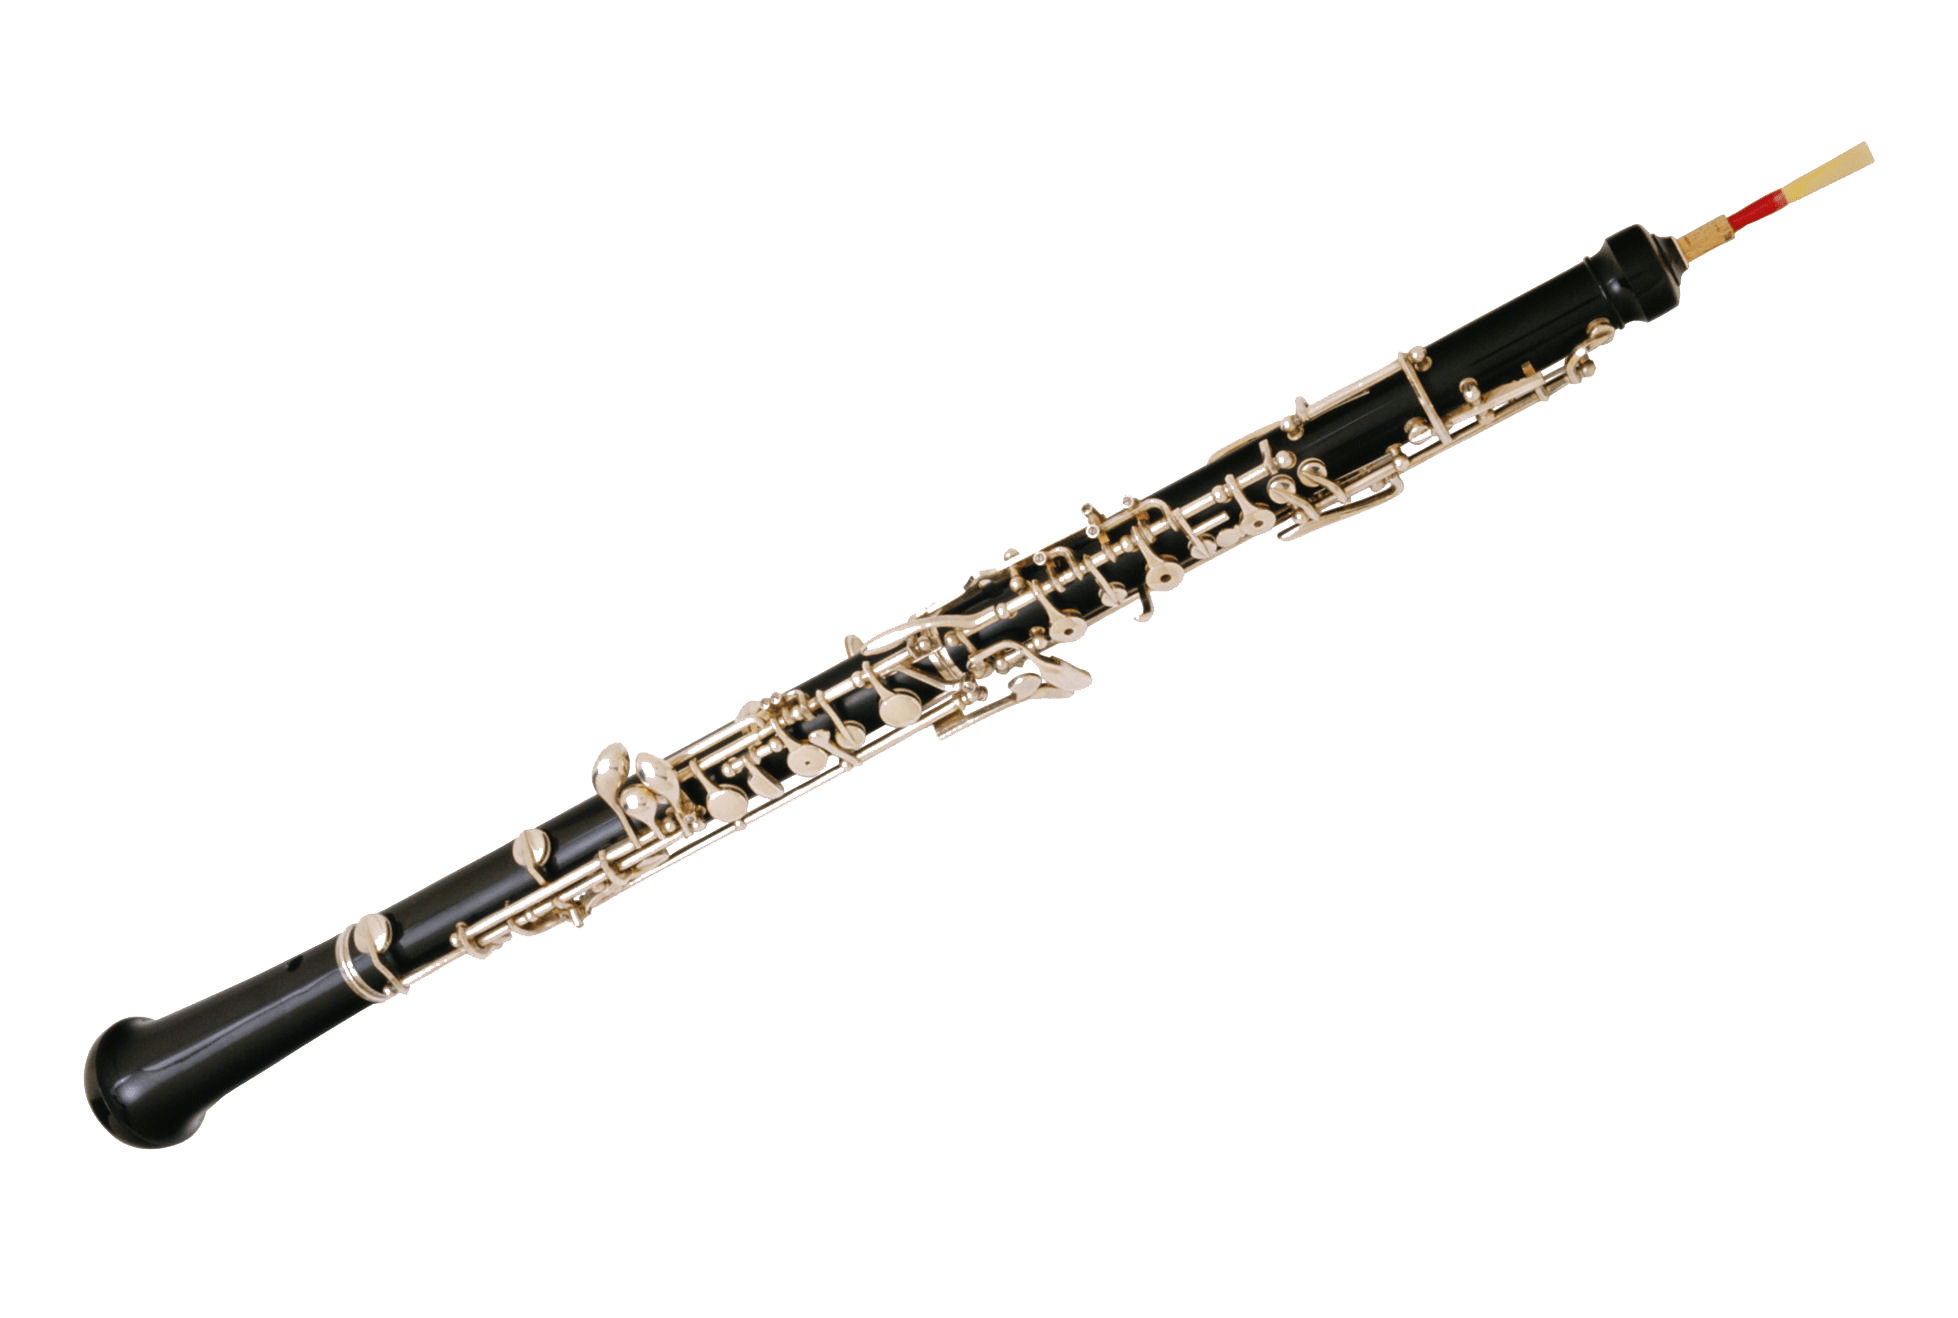 What playing the is. Oboe drawing image library